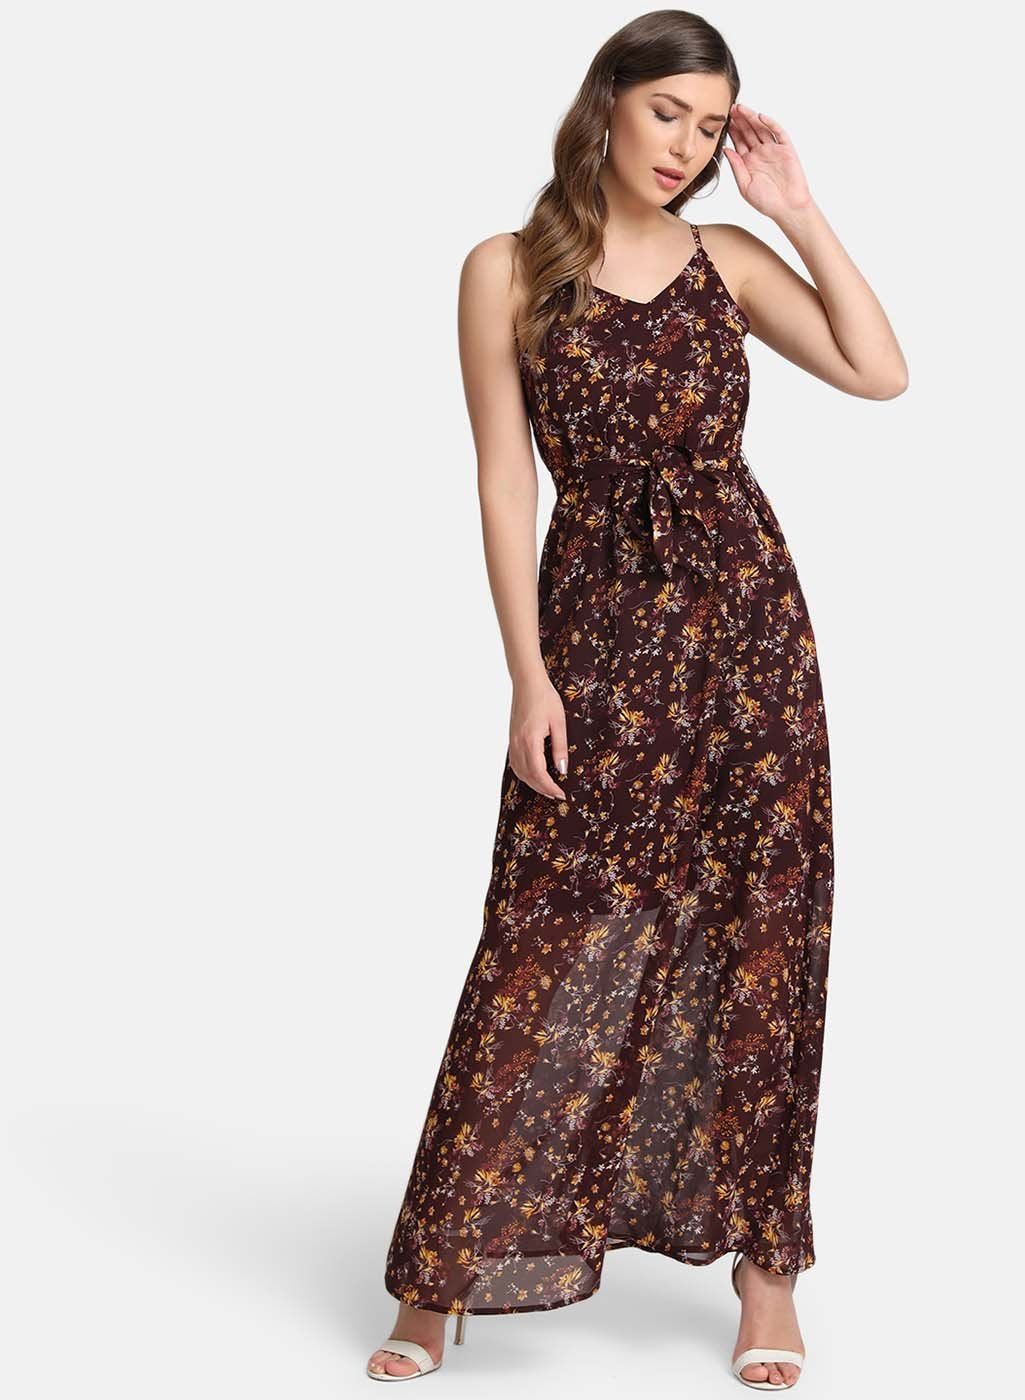 Maxi Dress With A Self-Tie Belt